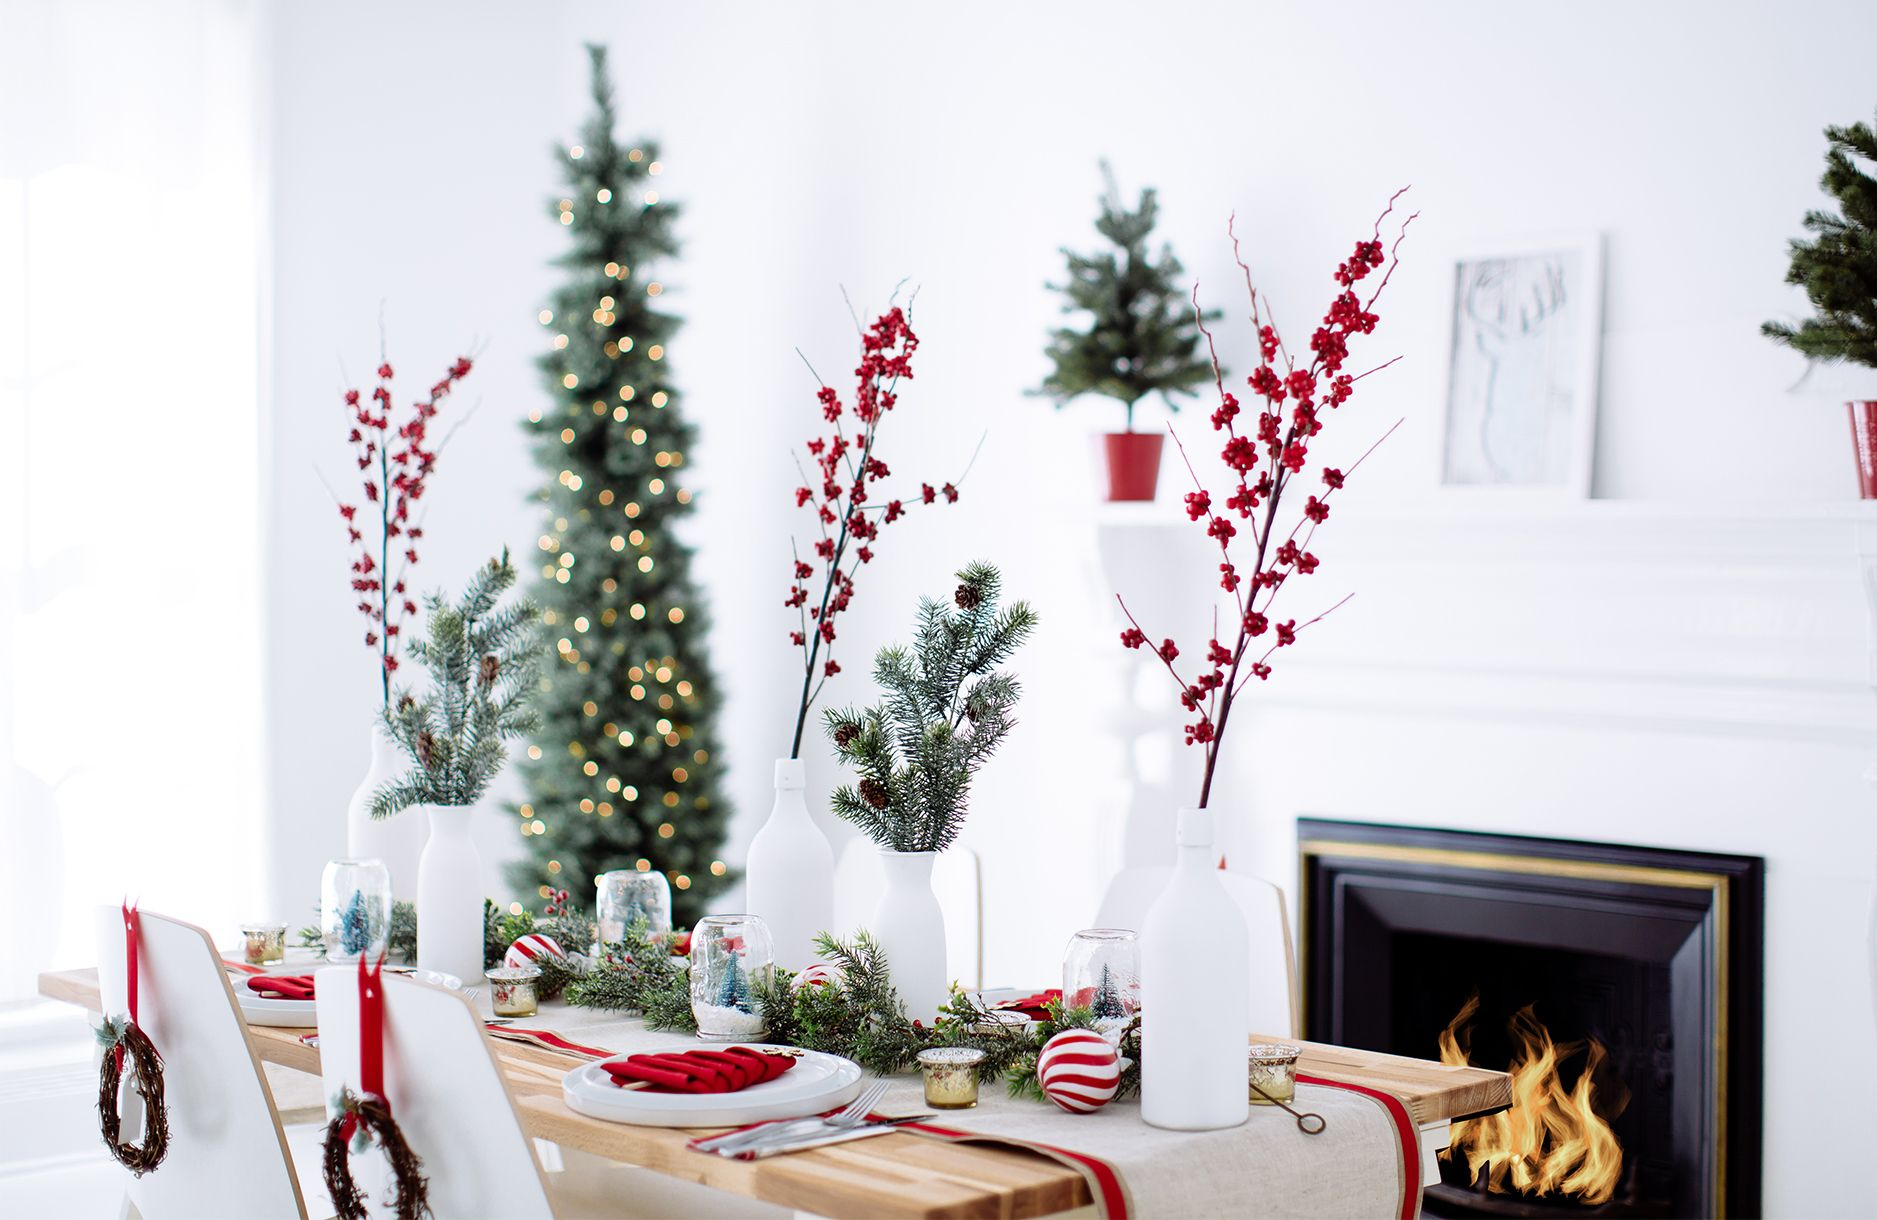 Holiday party decor: red, white & wreaths   Budgeting, White wreath ...